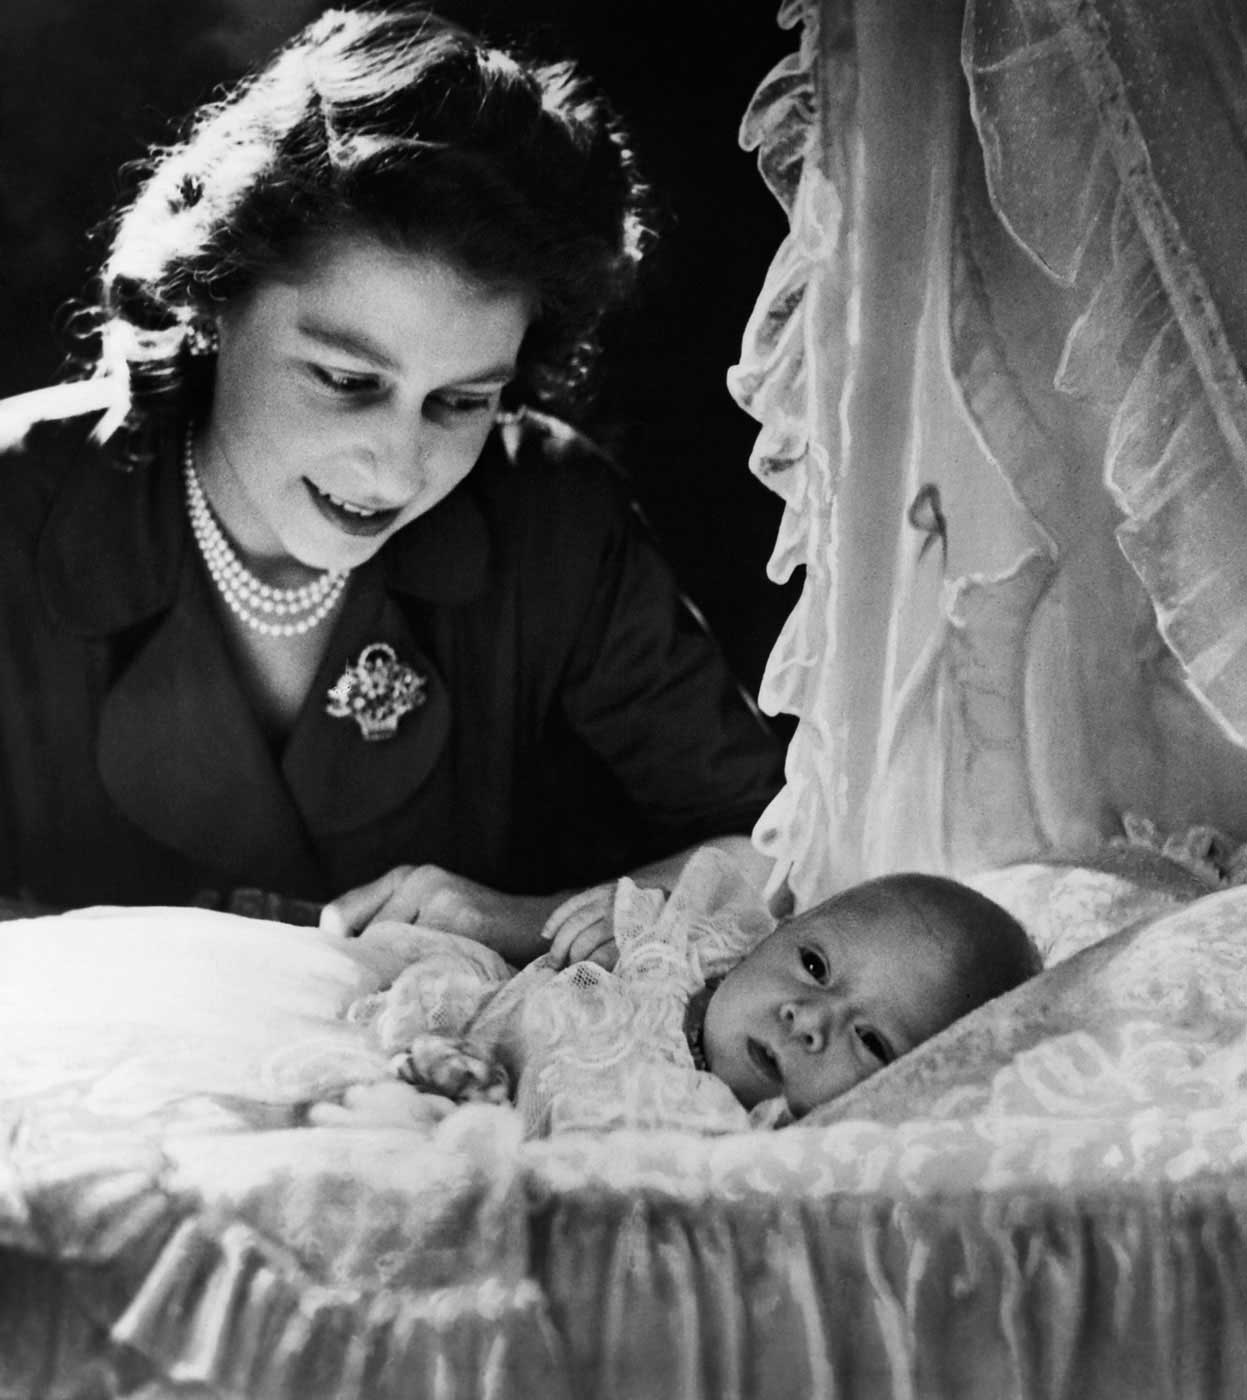 Princess Elizabeth with her 1-month-old son Prince Charles of Edinburgh in London on Dec. 21, 1948. Charles was born shortly after Elizabeth's father stated that the couple's children would be bestowed with the titles of prince and princess, even though Philip was no longer a royal prince.